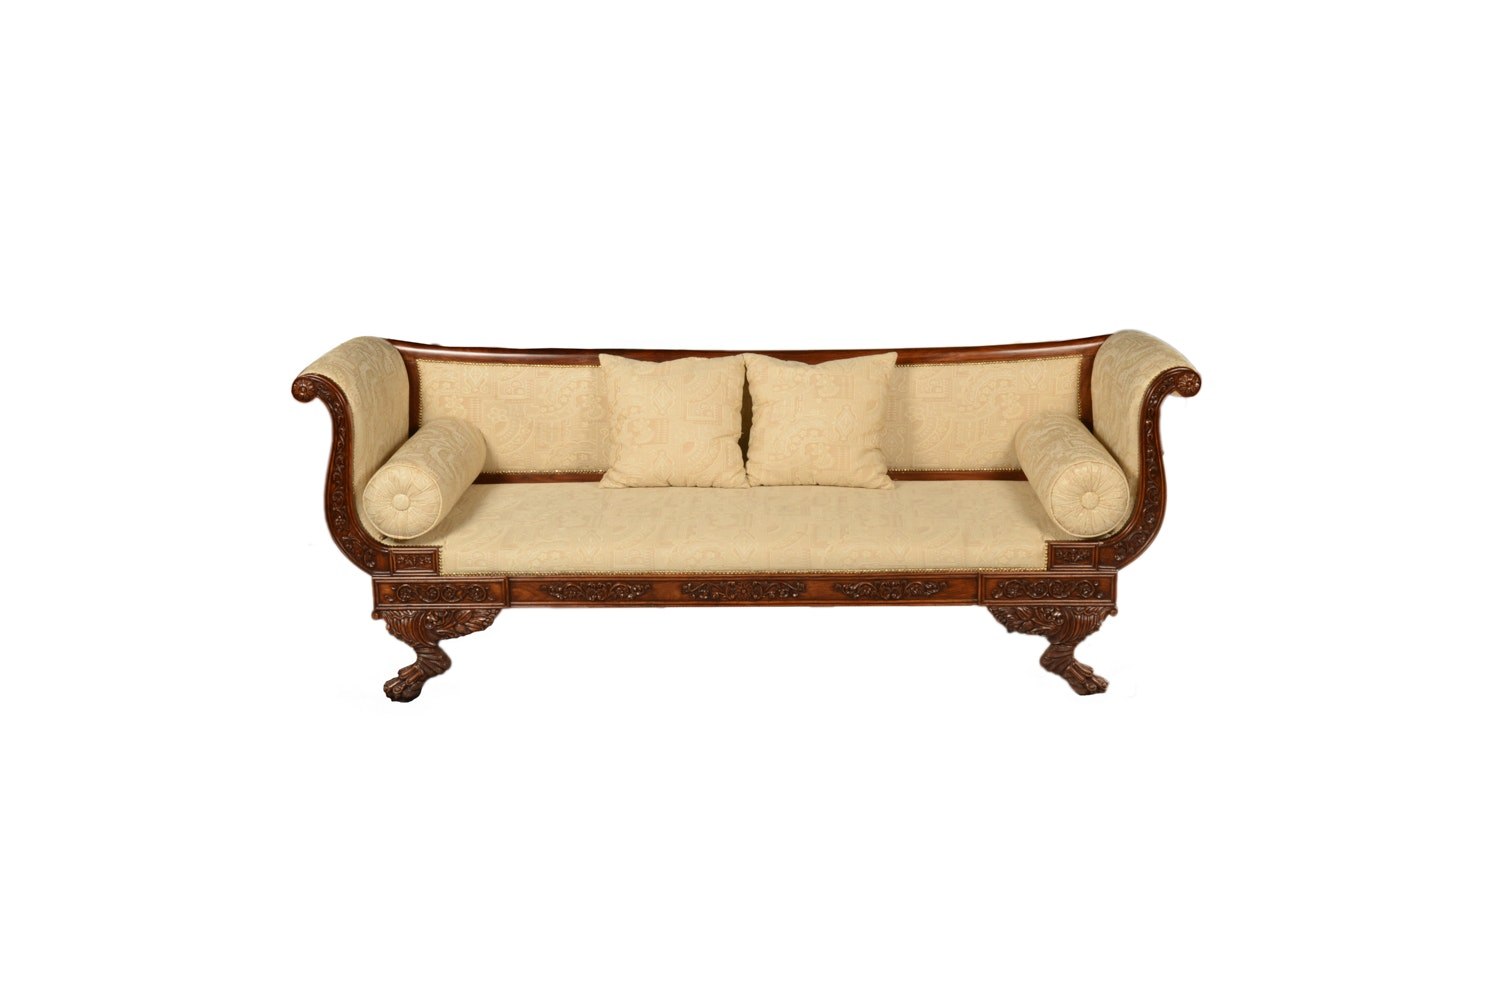 American Empire Style Mahogany and  Upholstered Settee, Mid/Late 20th Century